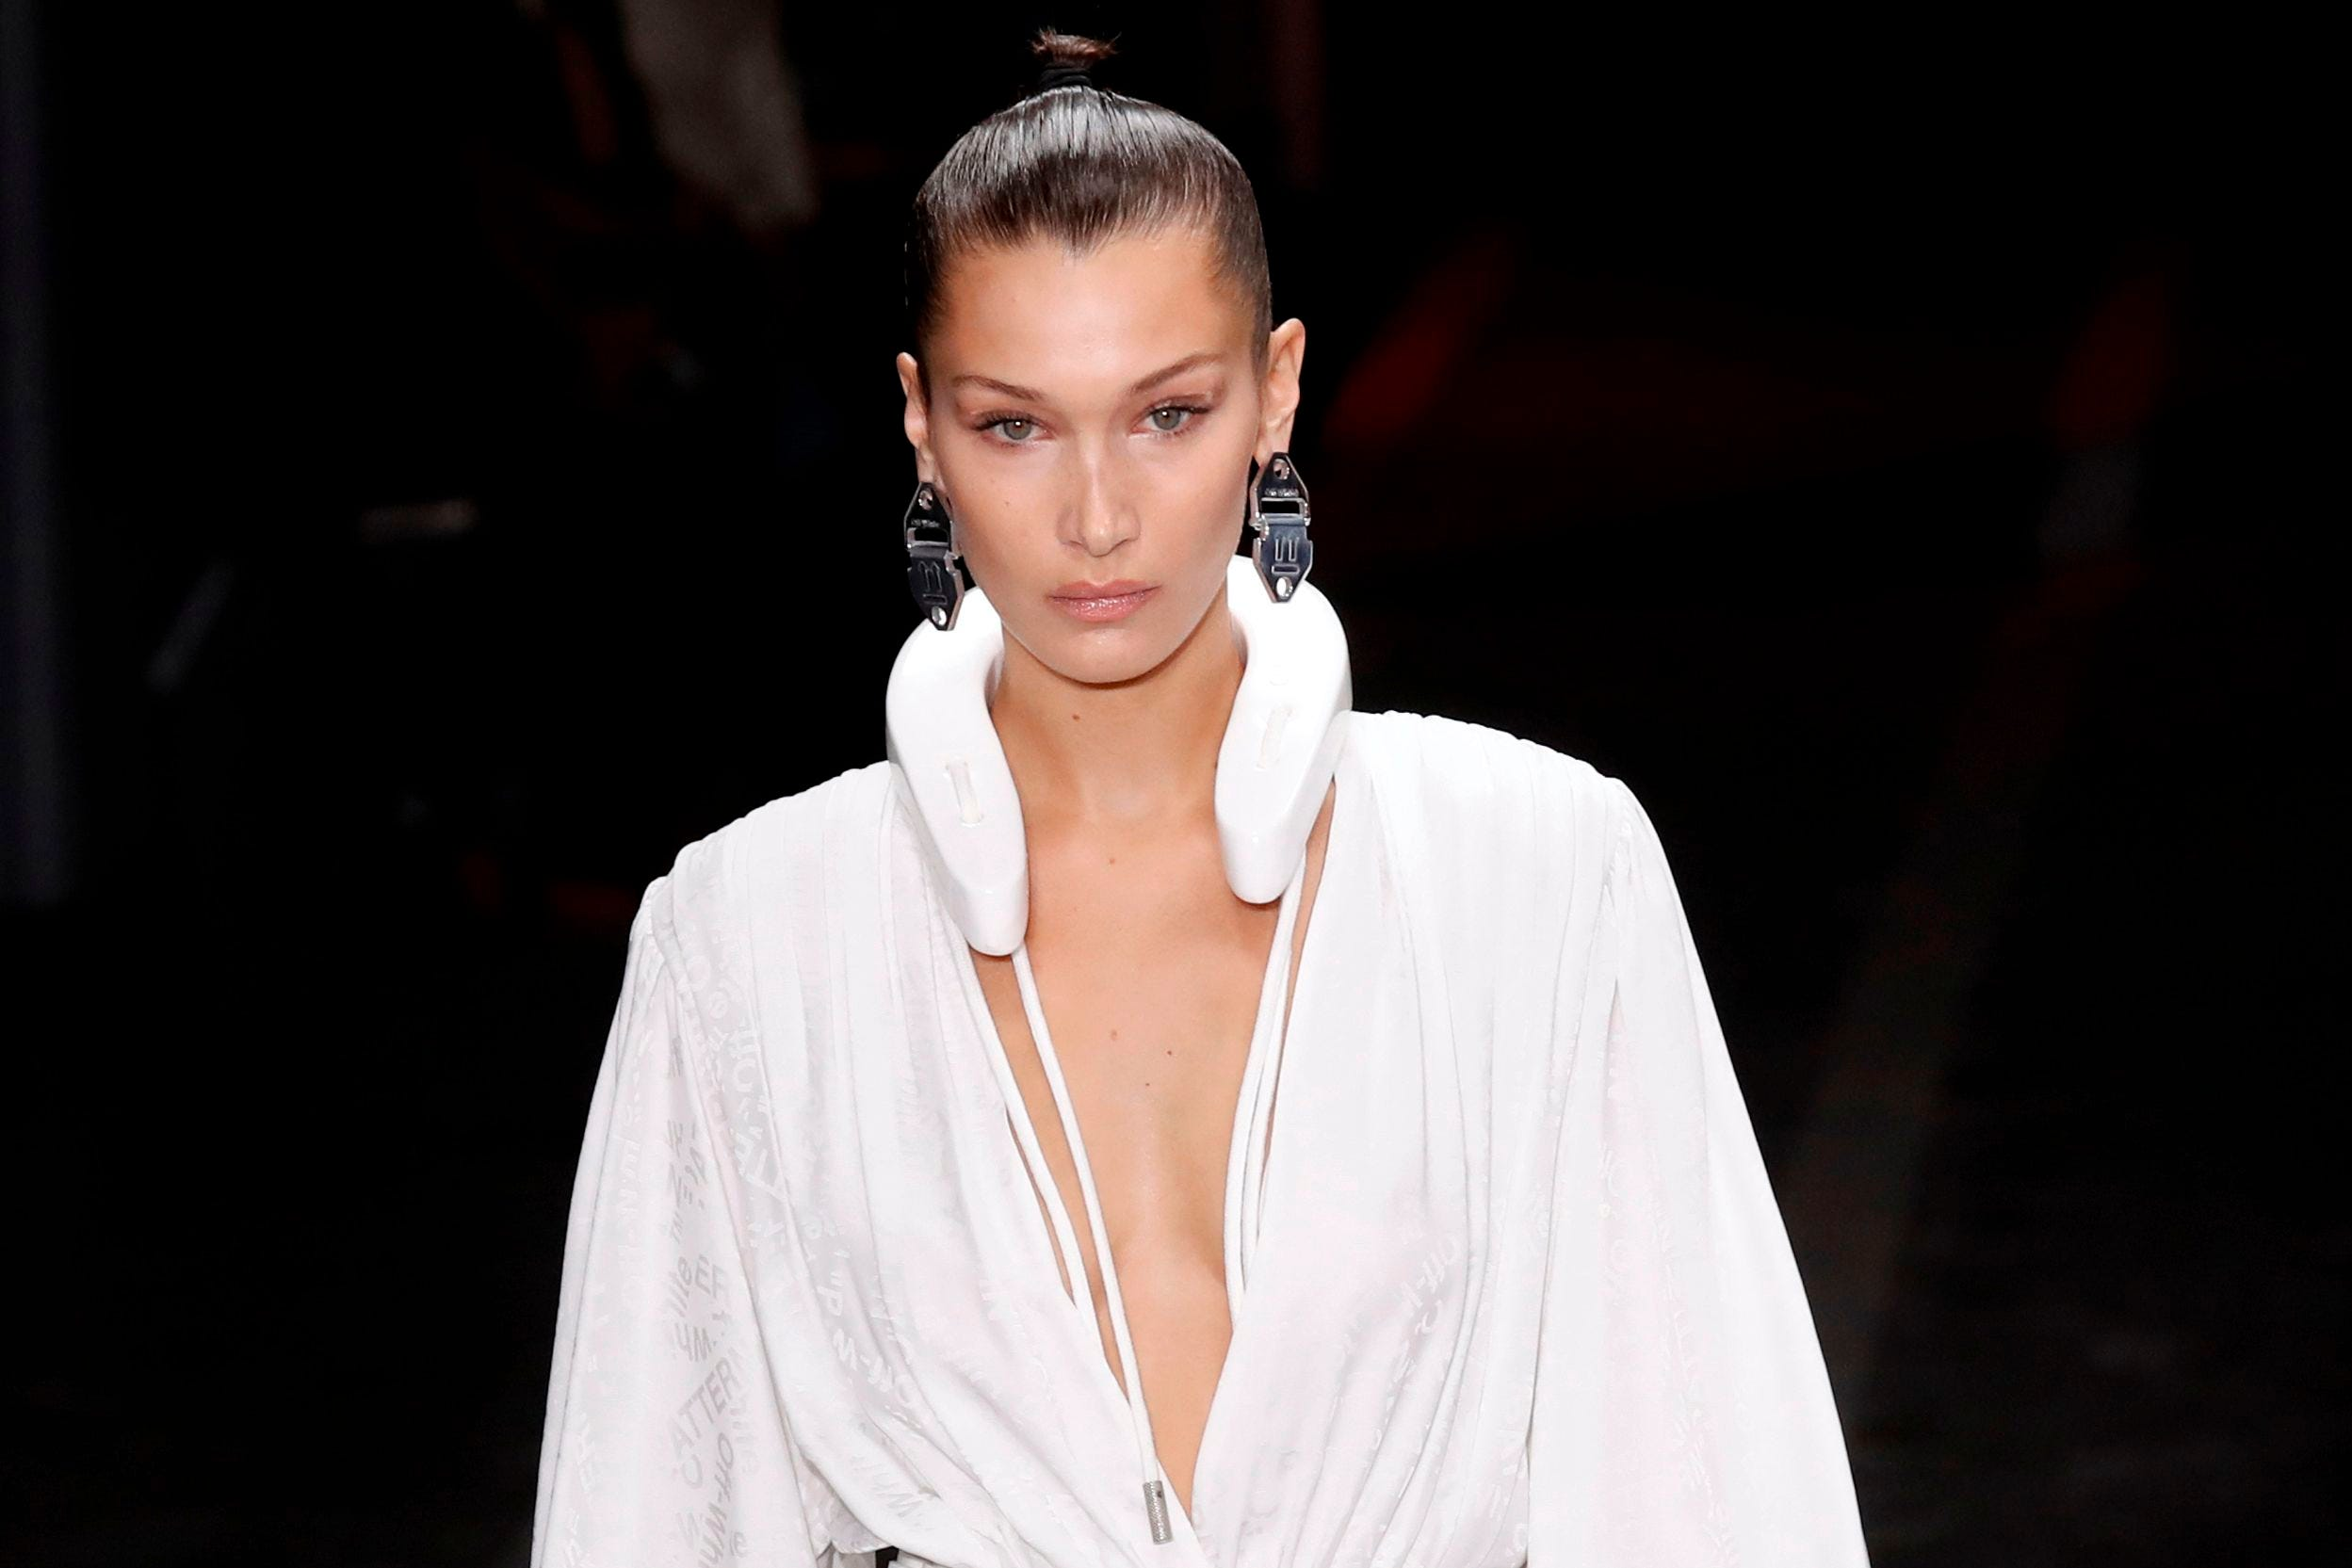 The 10 Most Popular Fashion Models On The Web